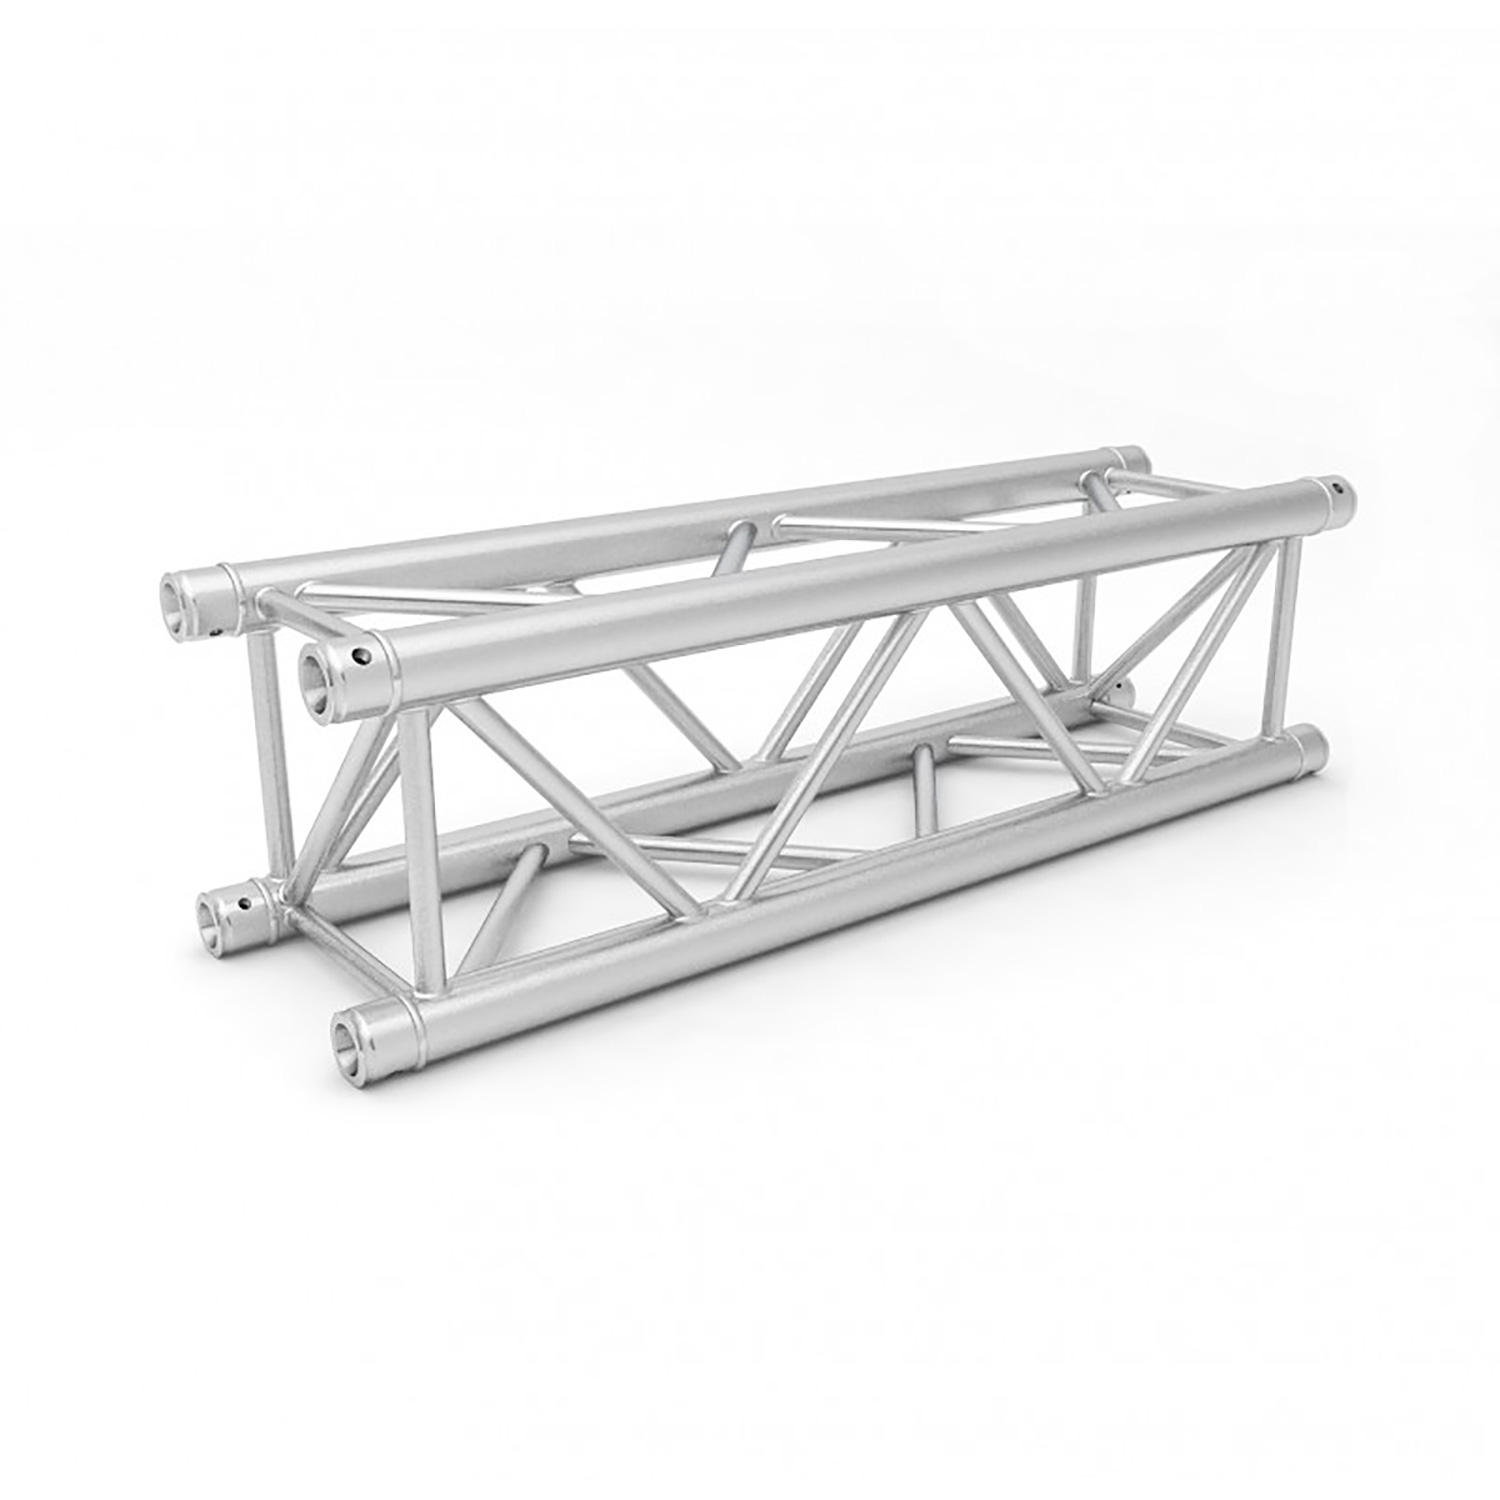 Straight Truss Section 150cm